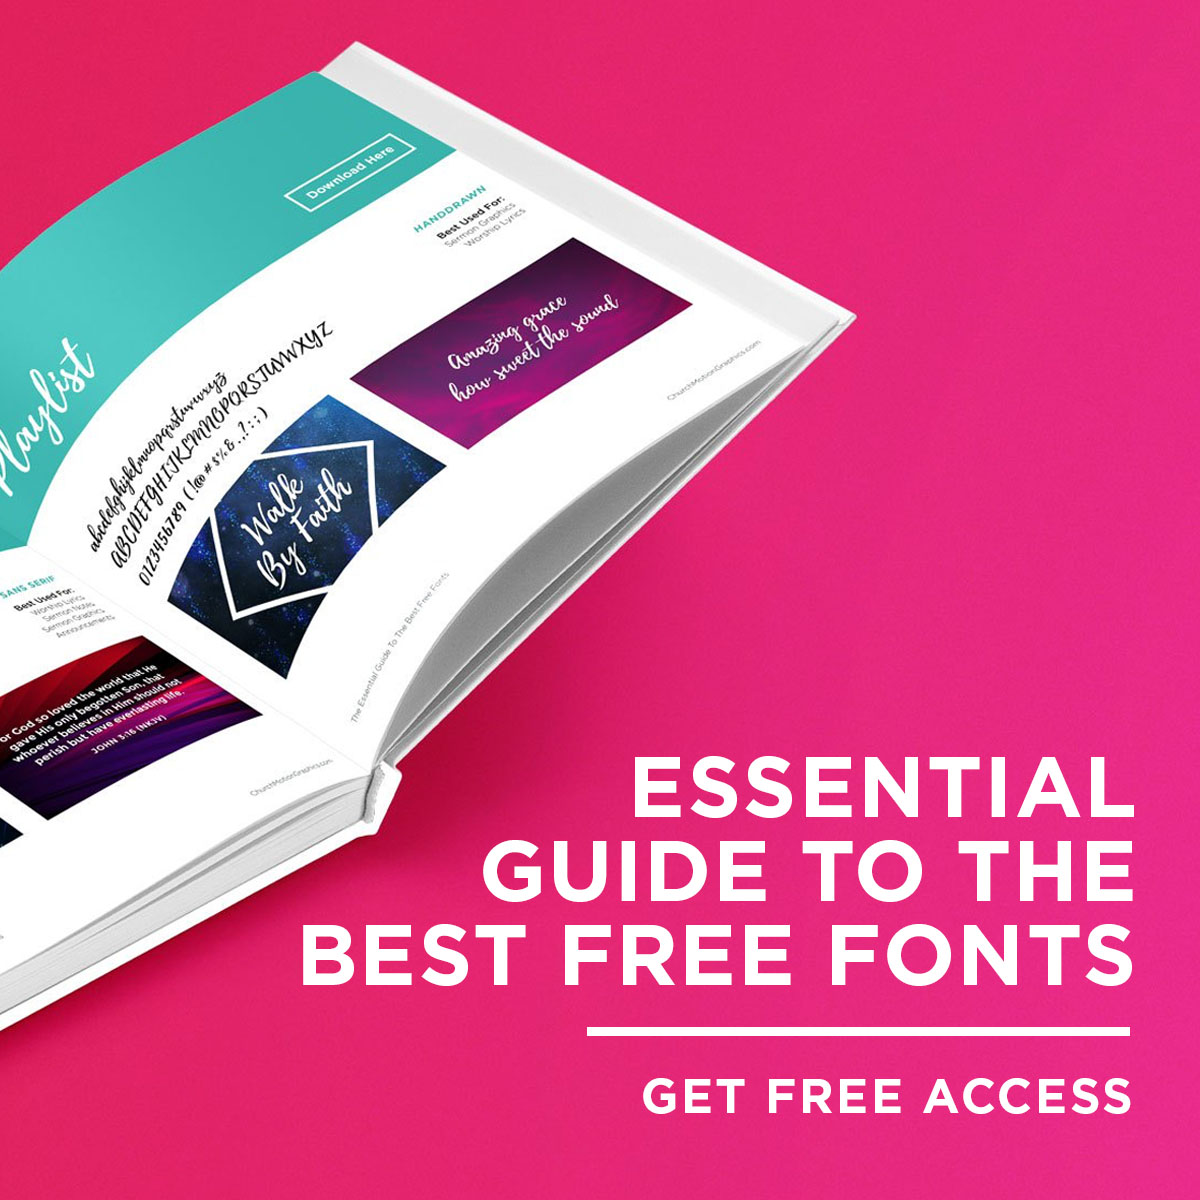 The Essential Guide To The Best Free Fonts